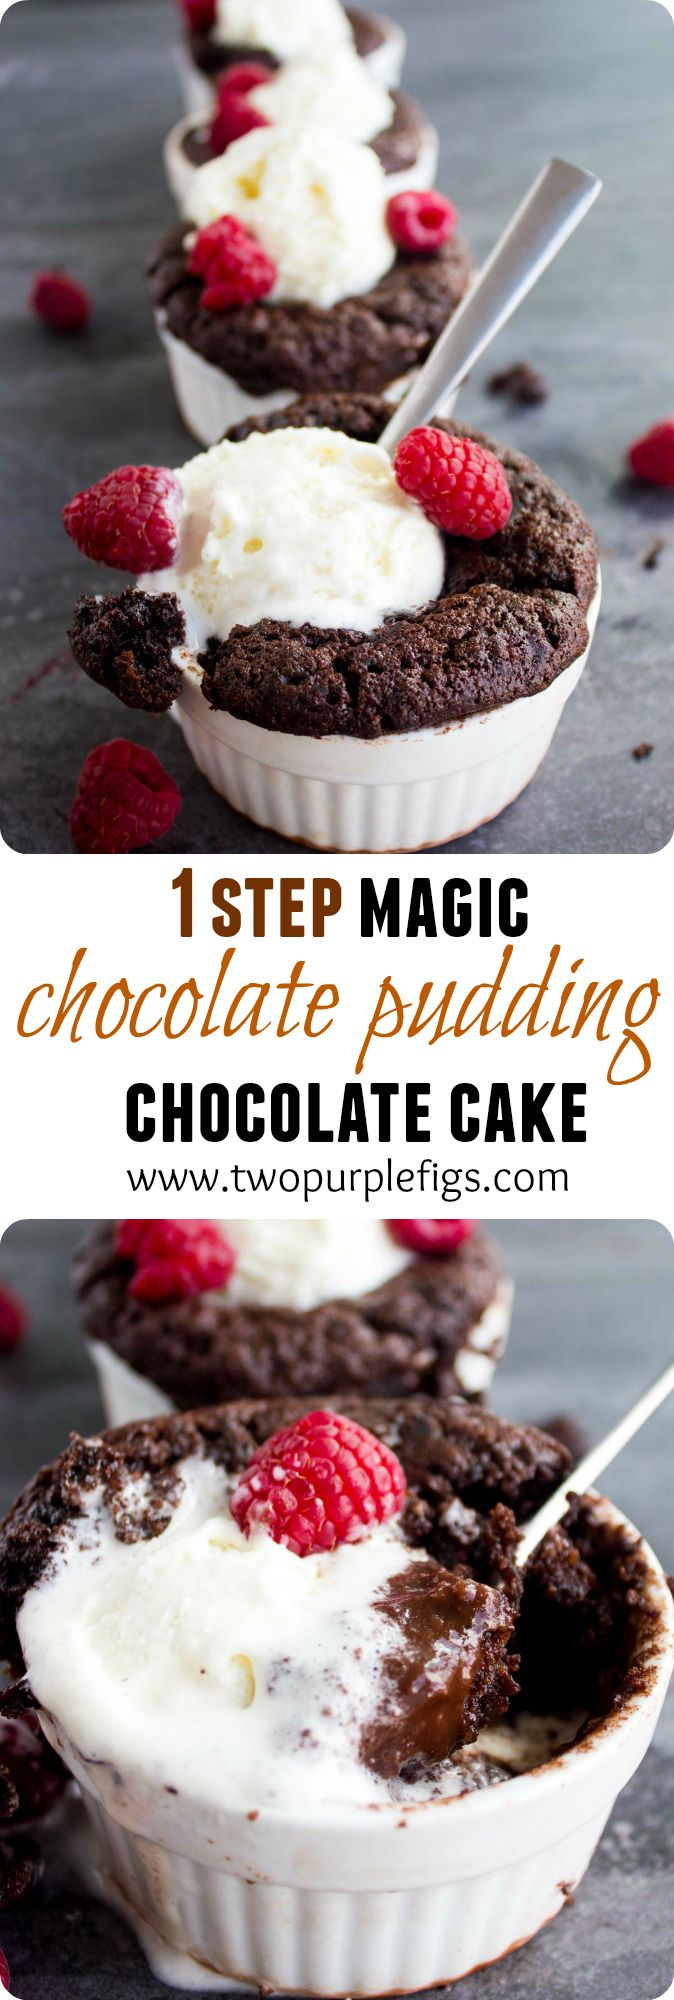 Mini Chocolate Pudding Cakes. A magical cake that is all baked in one pan but separated in the oven to a fluffy chocolate cake and thick chocolate pudding sauce! An EASY simple recipe that EVERYONE will love! www.twopurplefigs.com